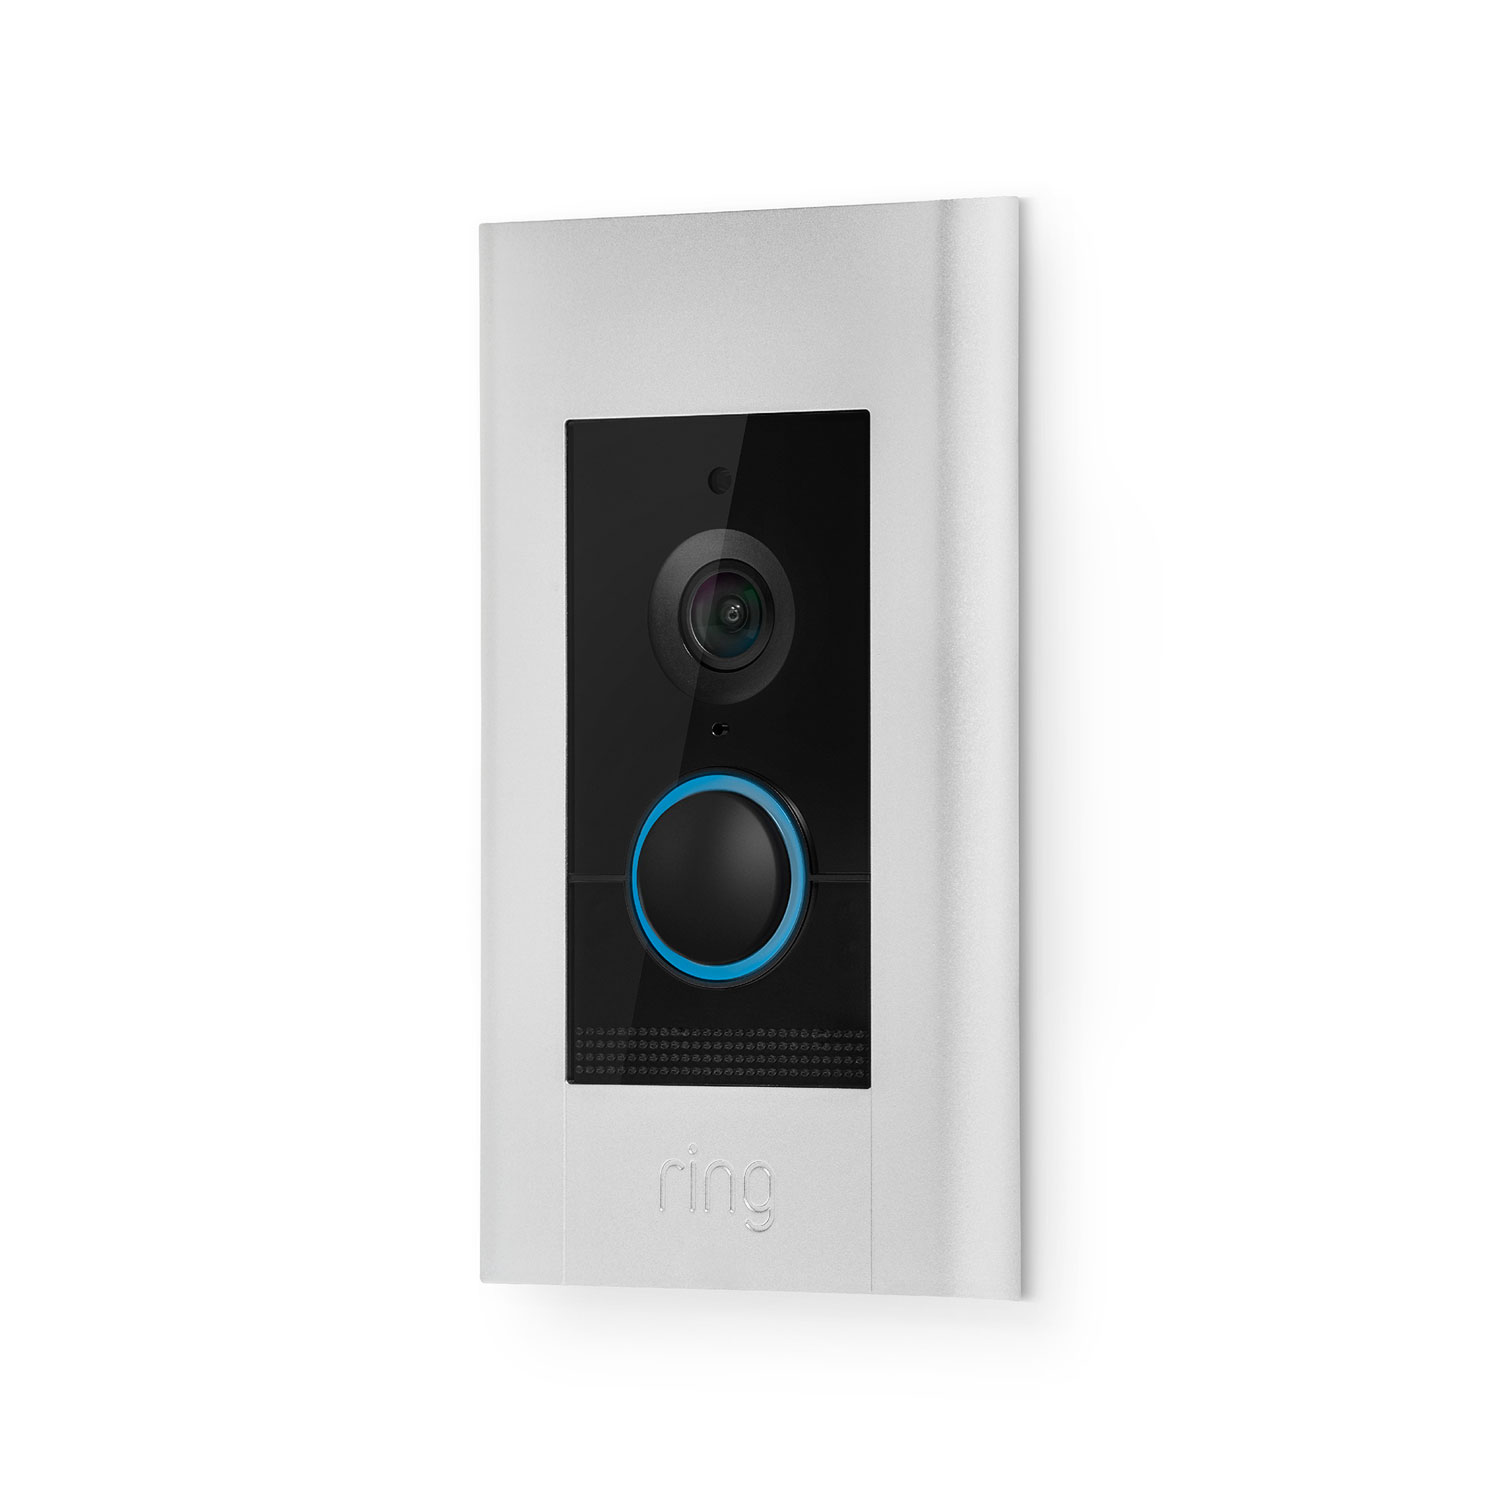 ring video doorbell elite cam ra de surveillance ring sur. Black Bedroom Furniture Sets. Home Design Ideas